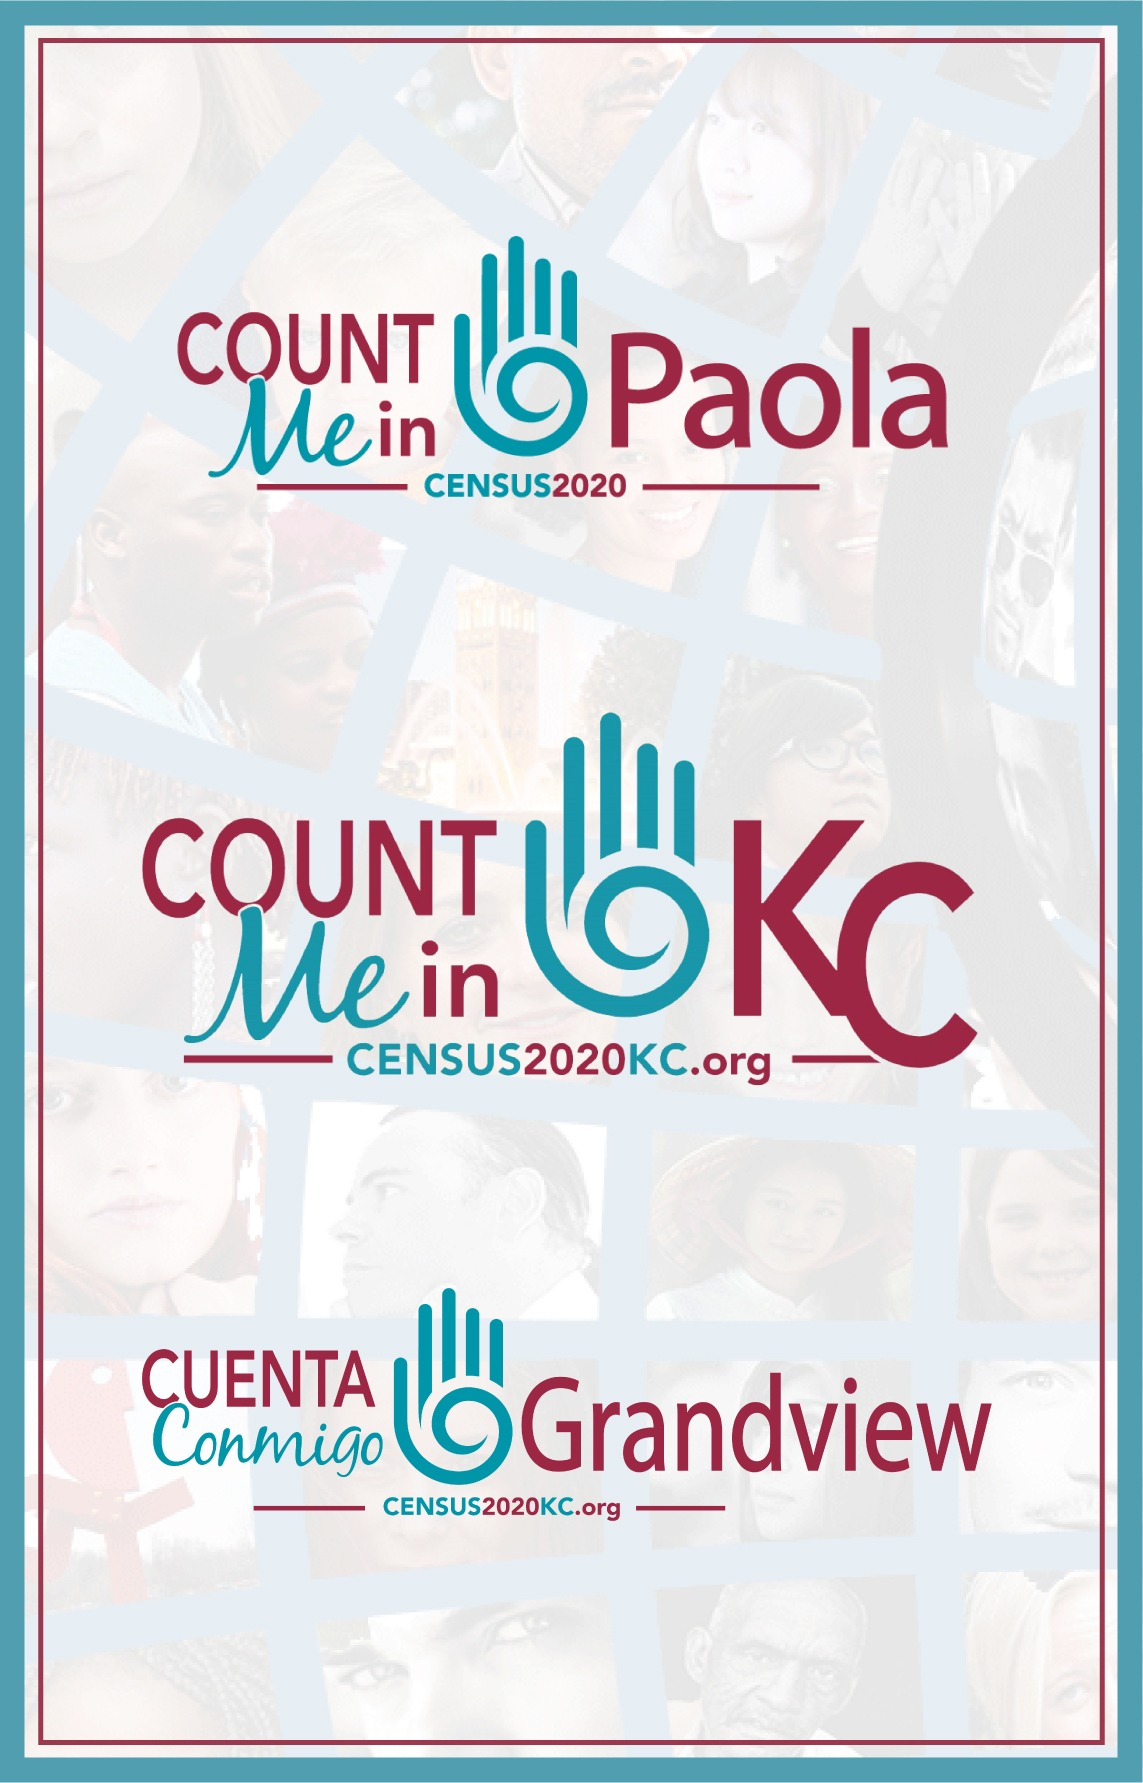 Count me in KC, Paola, Grandview logos